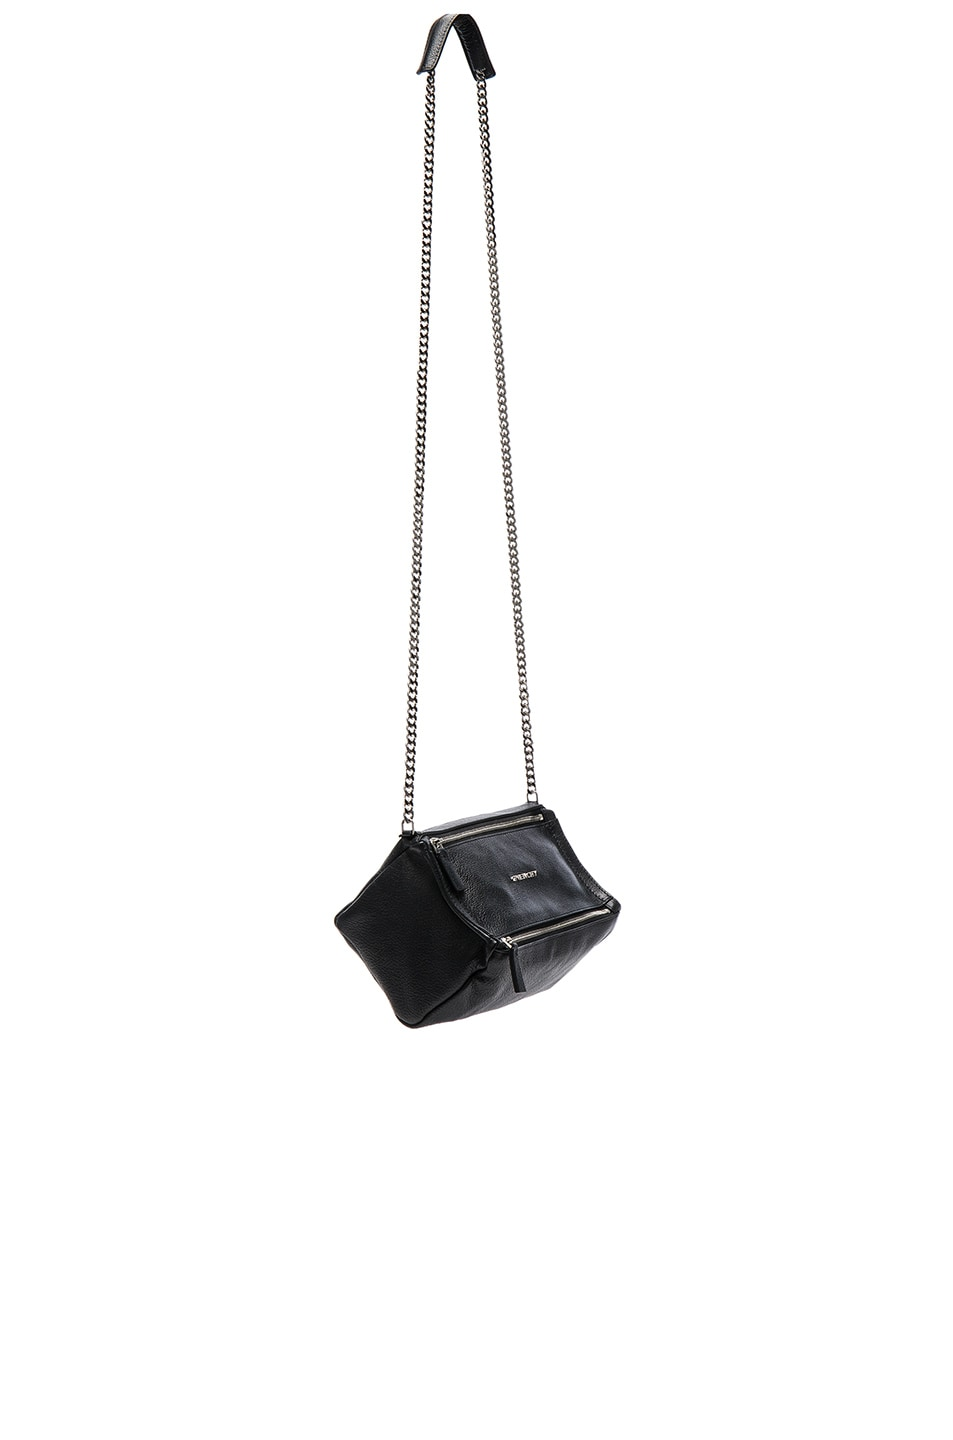 Image 1 of Givenchy Pandora Mini Sugar Chain Bag in Black